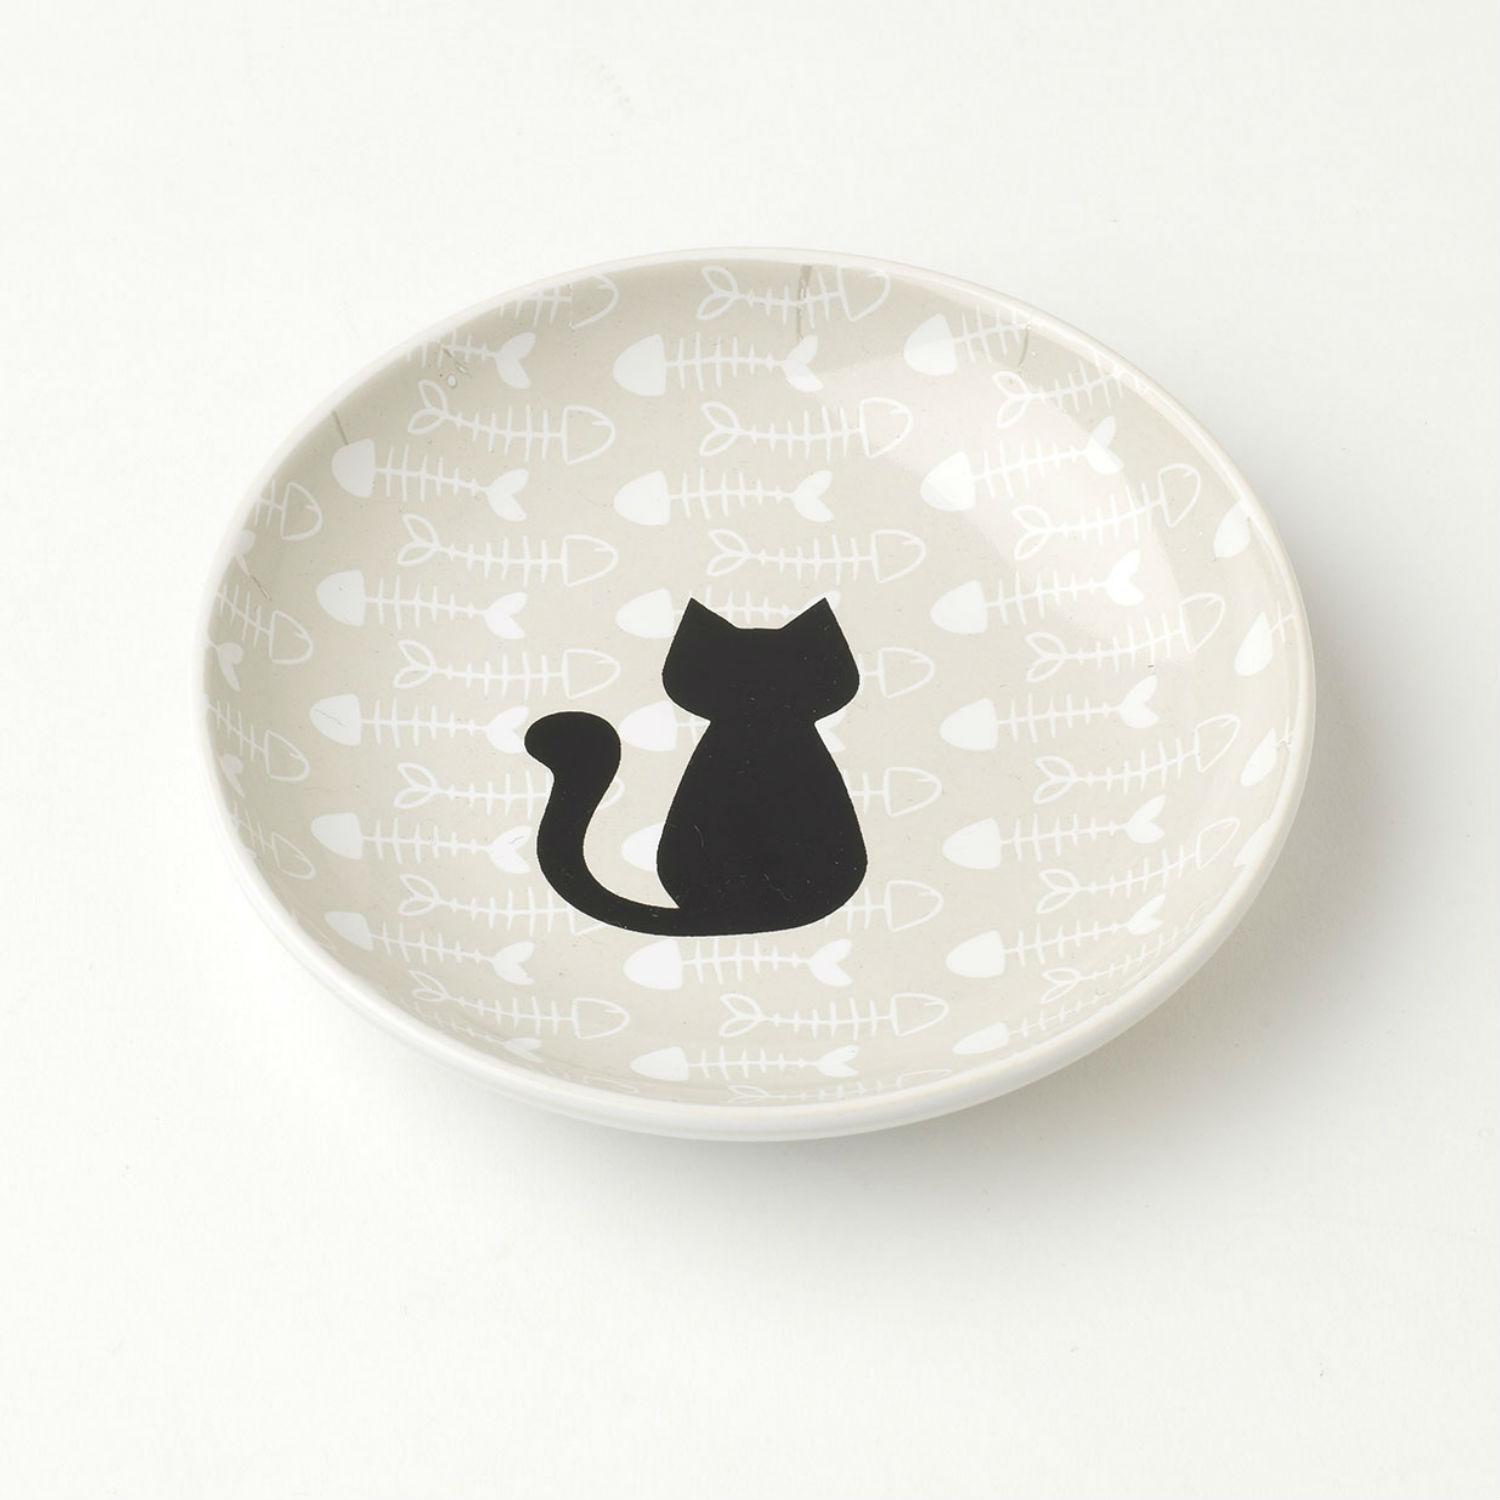 Kitty & Fish Cat Saucer